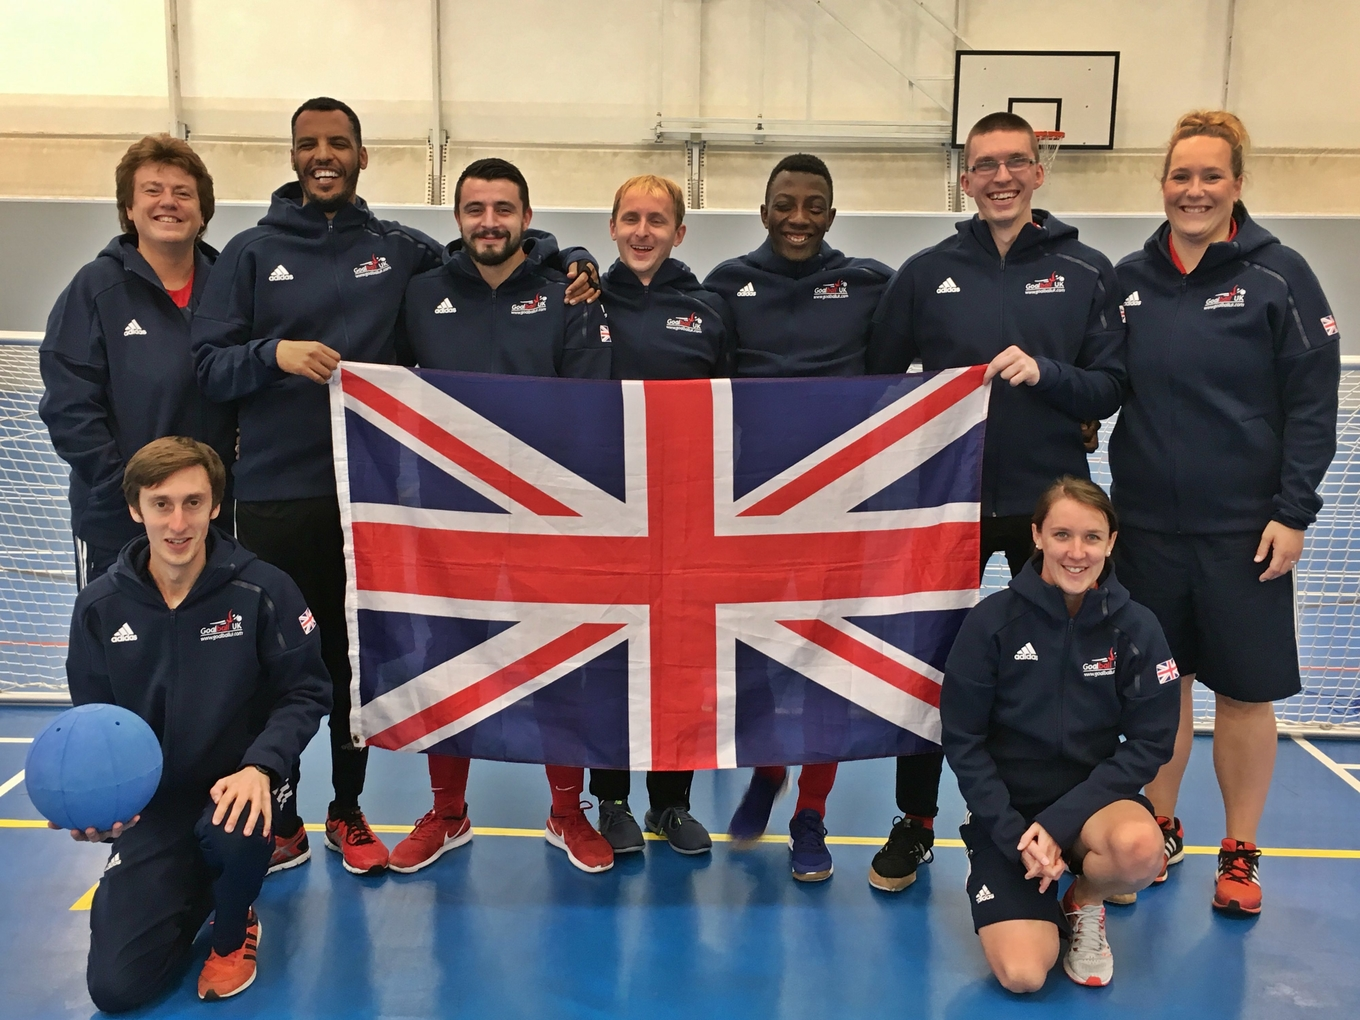 Image shows Faye (bottom right) with the 2017 GB Men's team holding the Union Jack flag